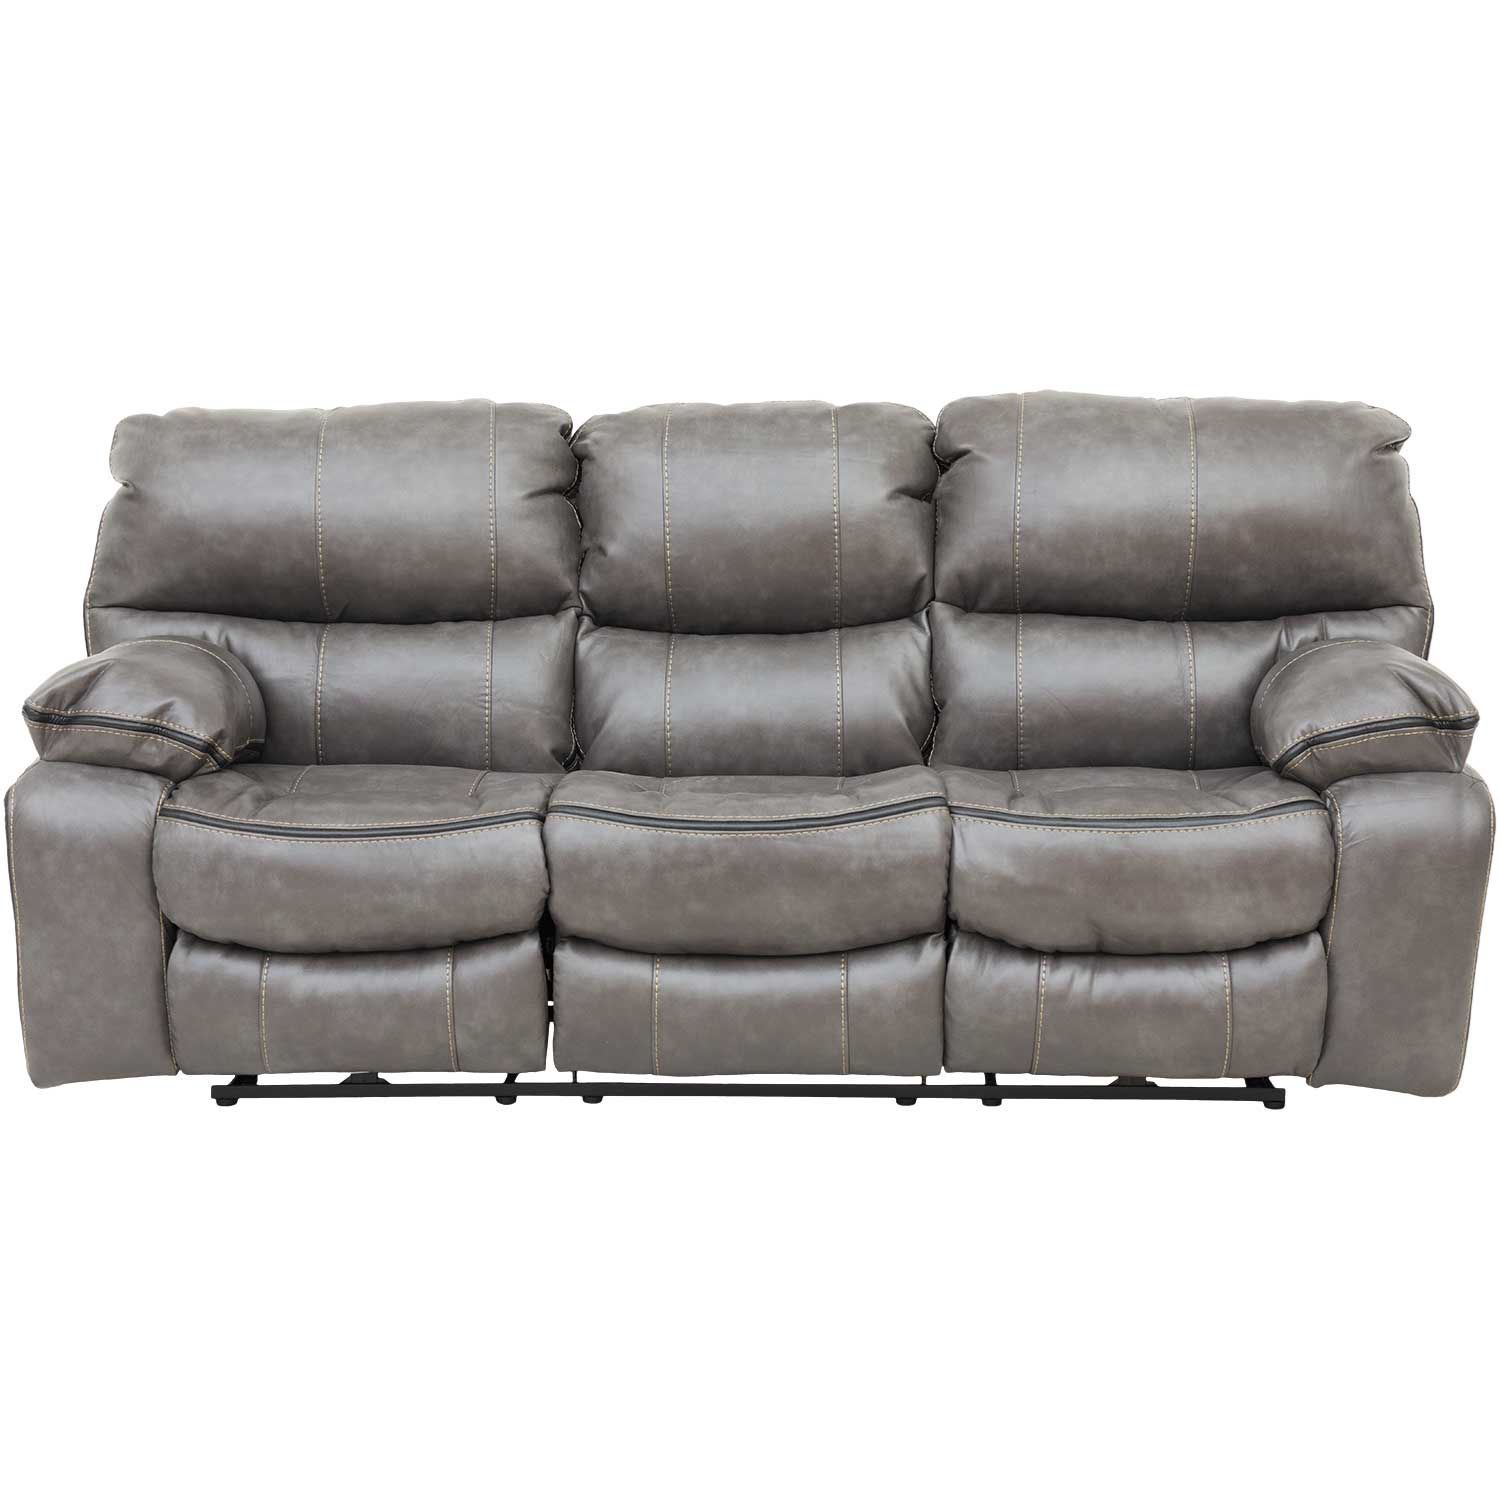 Camden Steel Reclining Sofa 4081 Jackson Furniture Catnapper